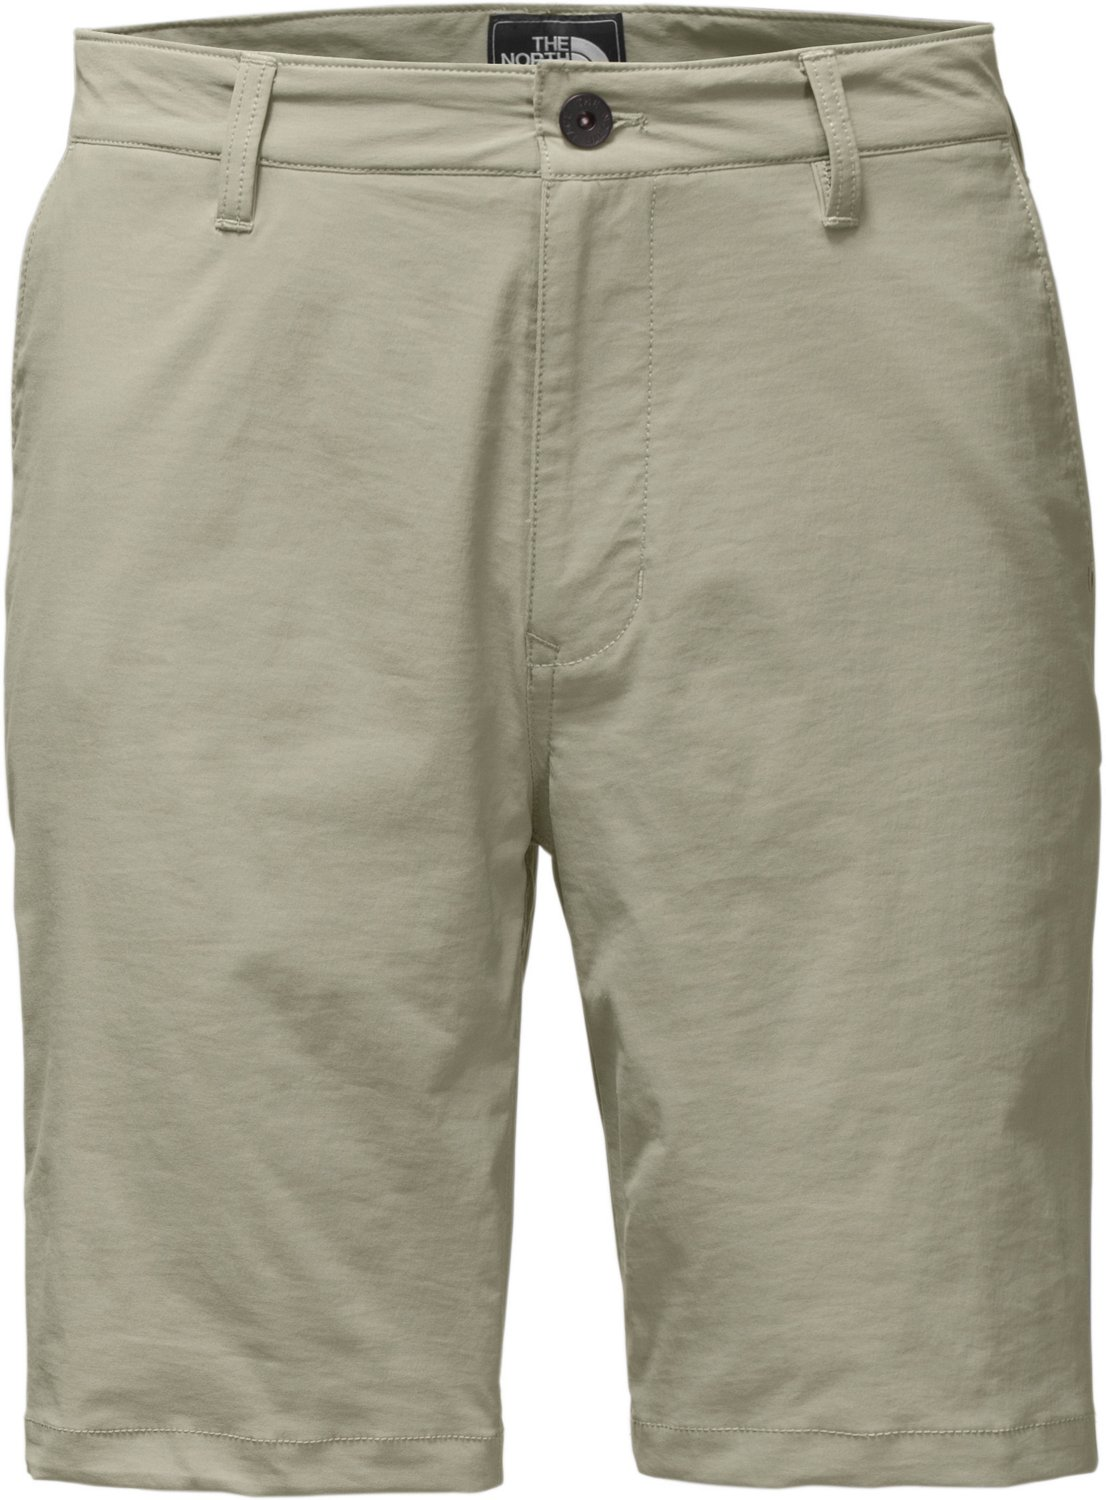 f4f57a256a Display product reviews for The North Face Men s Sprag Shorts